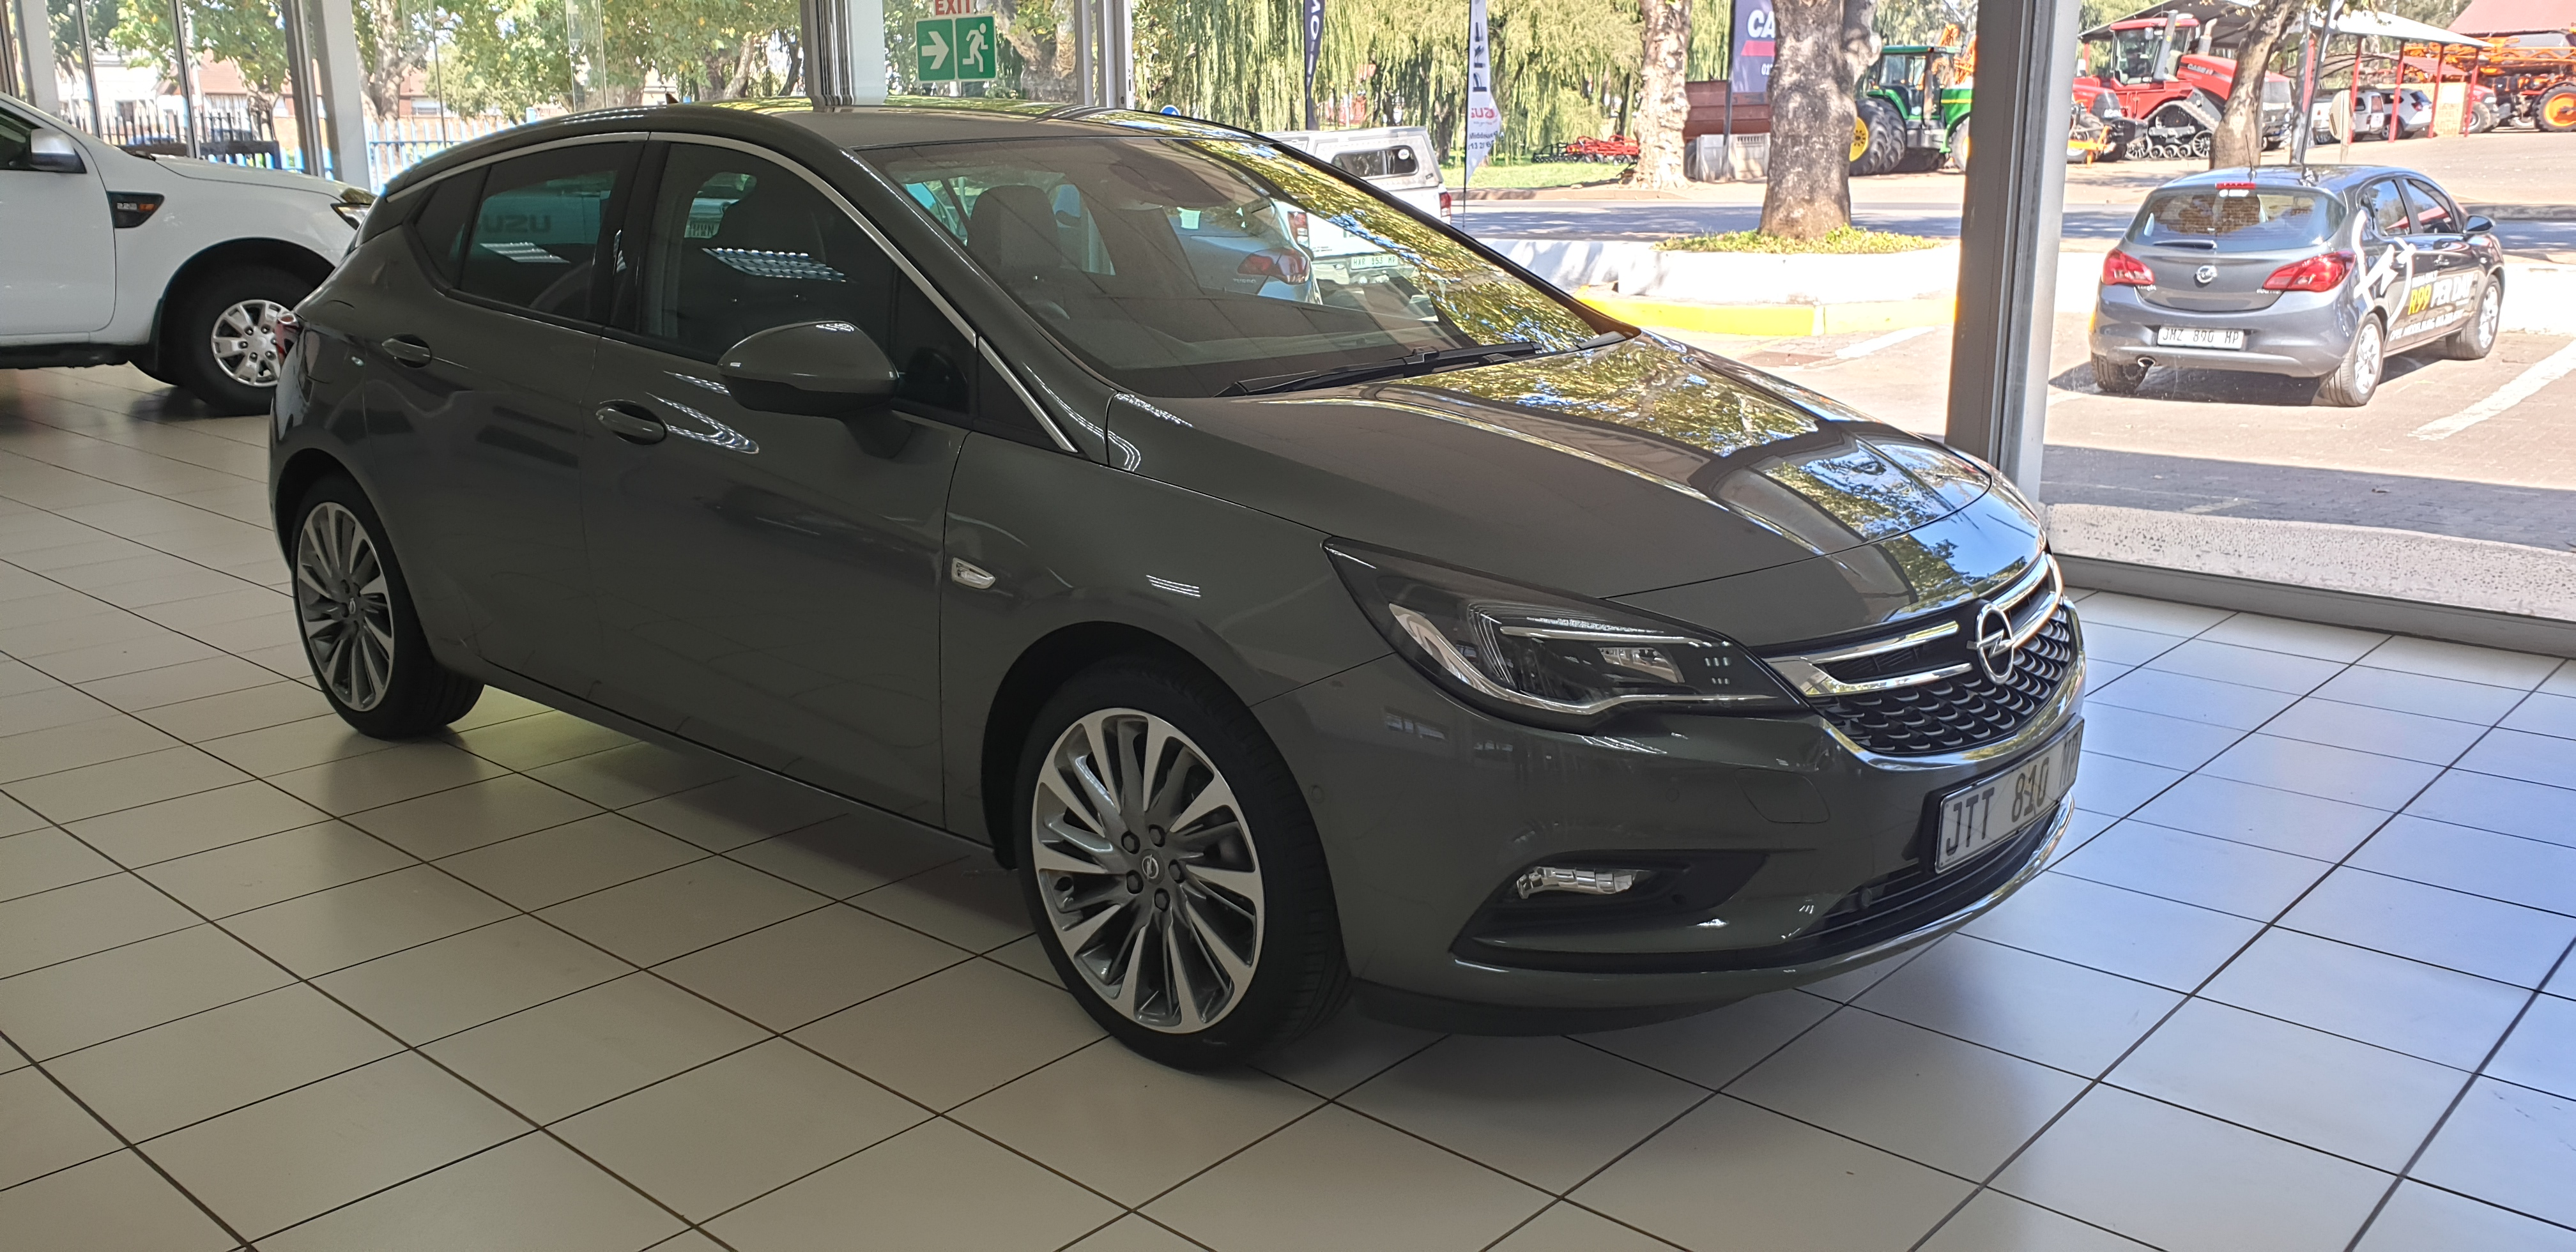 Opel Astra 1.4T Enjoy Auto 5-Door